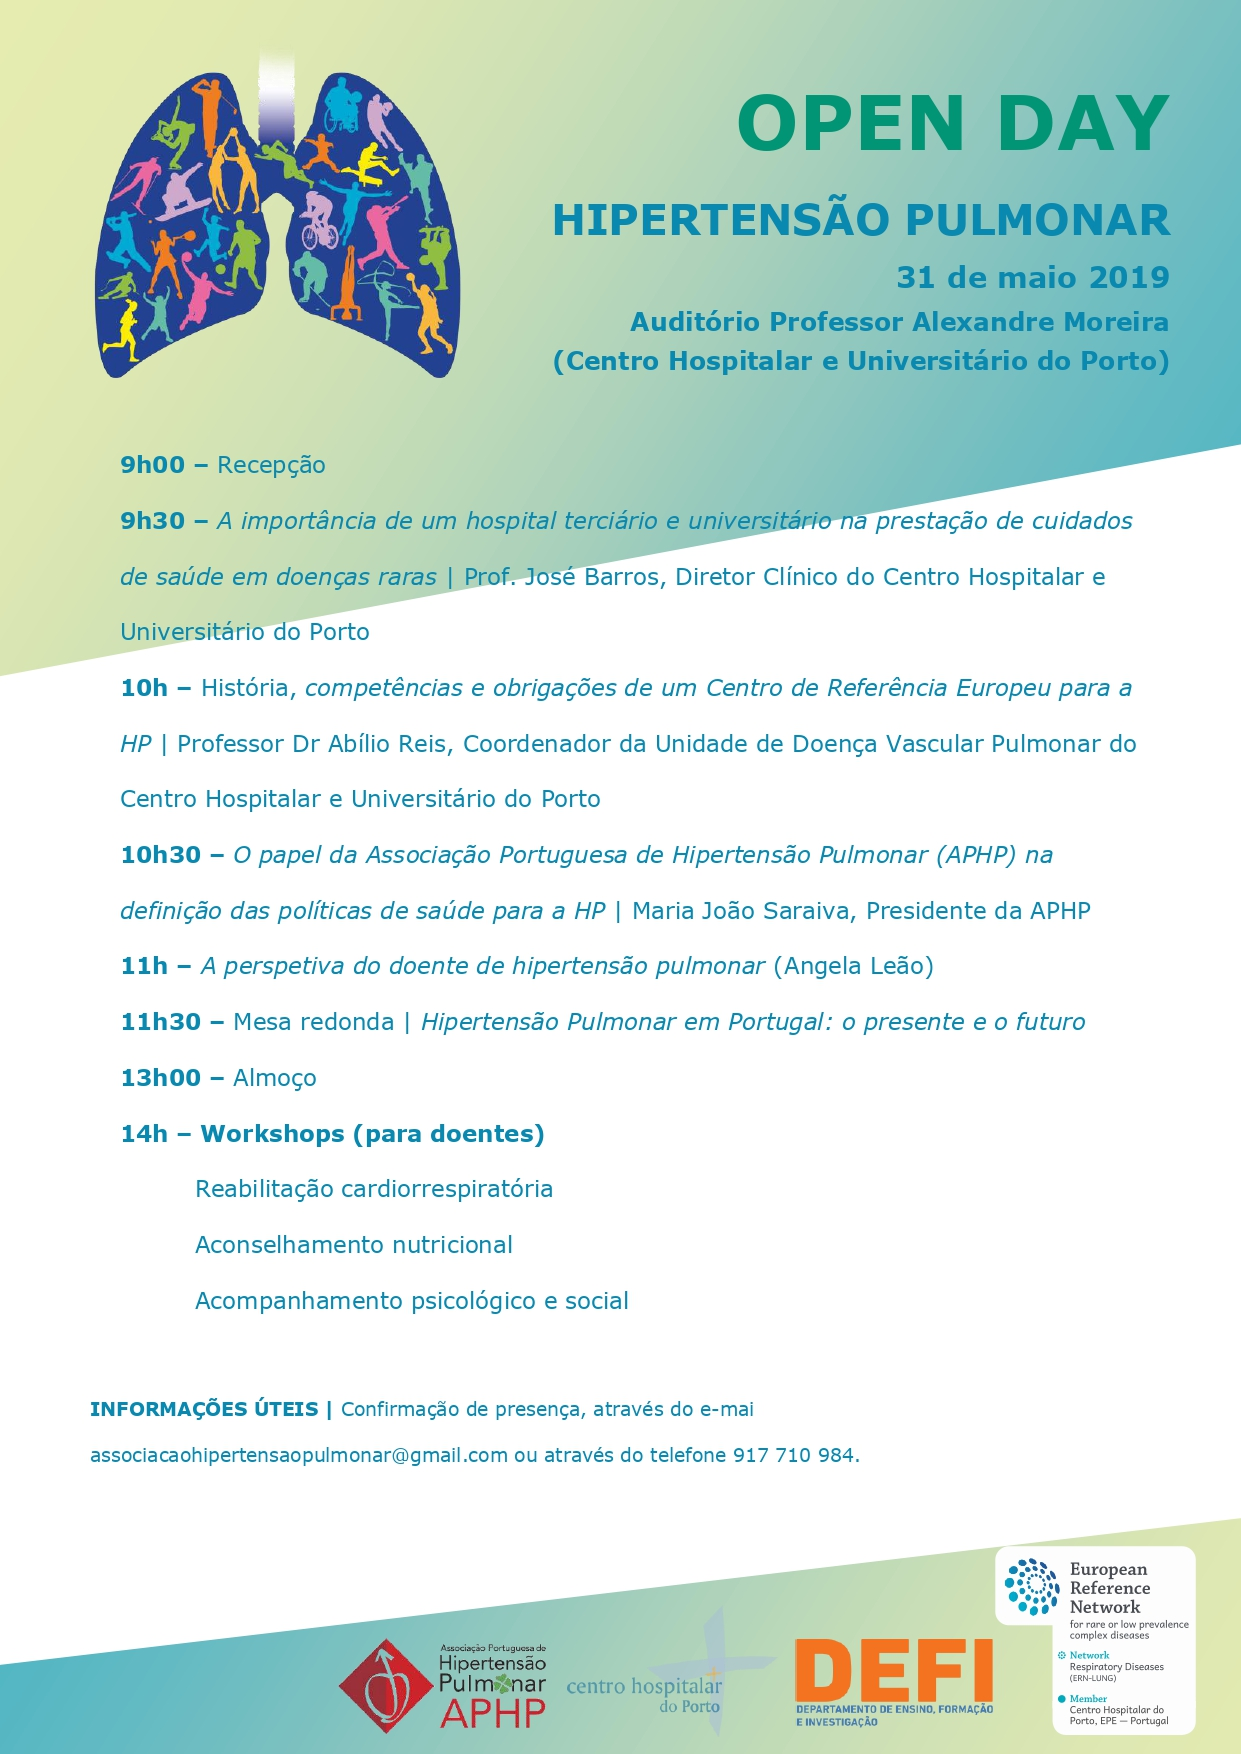 Open Day (Cartaz)_APHP